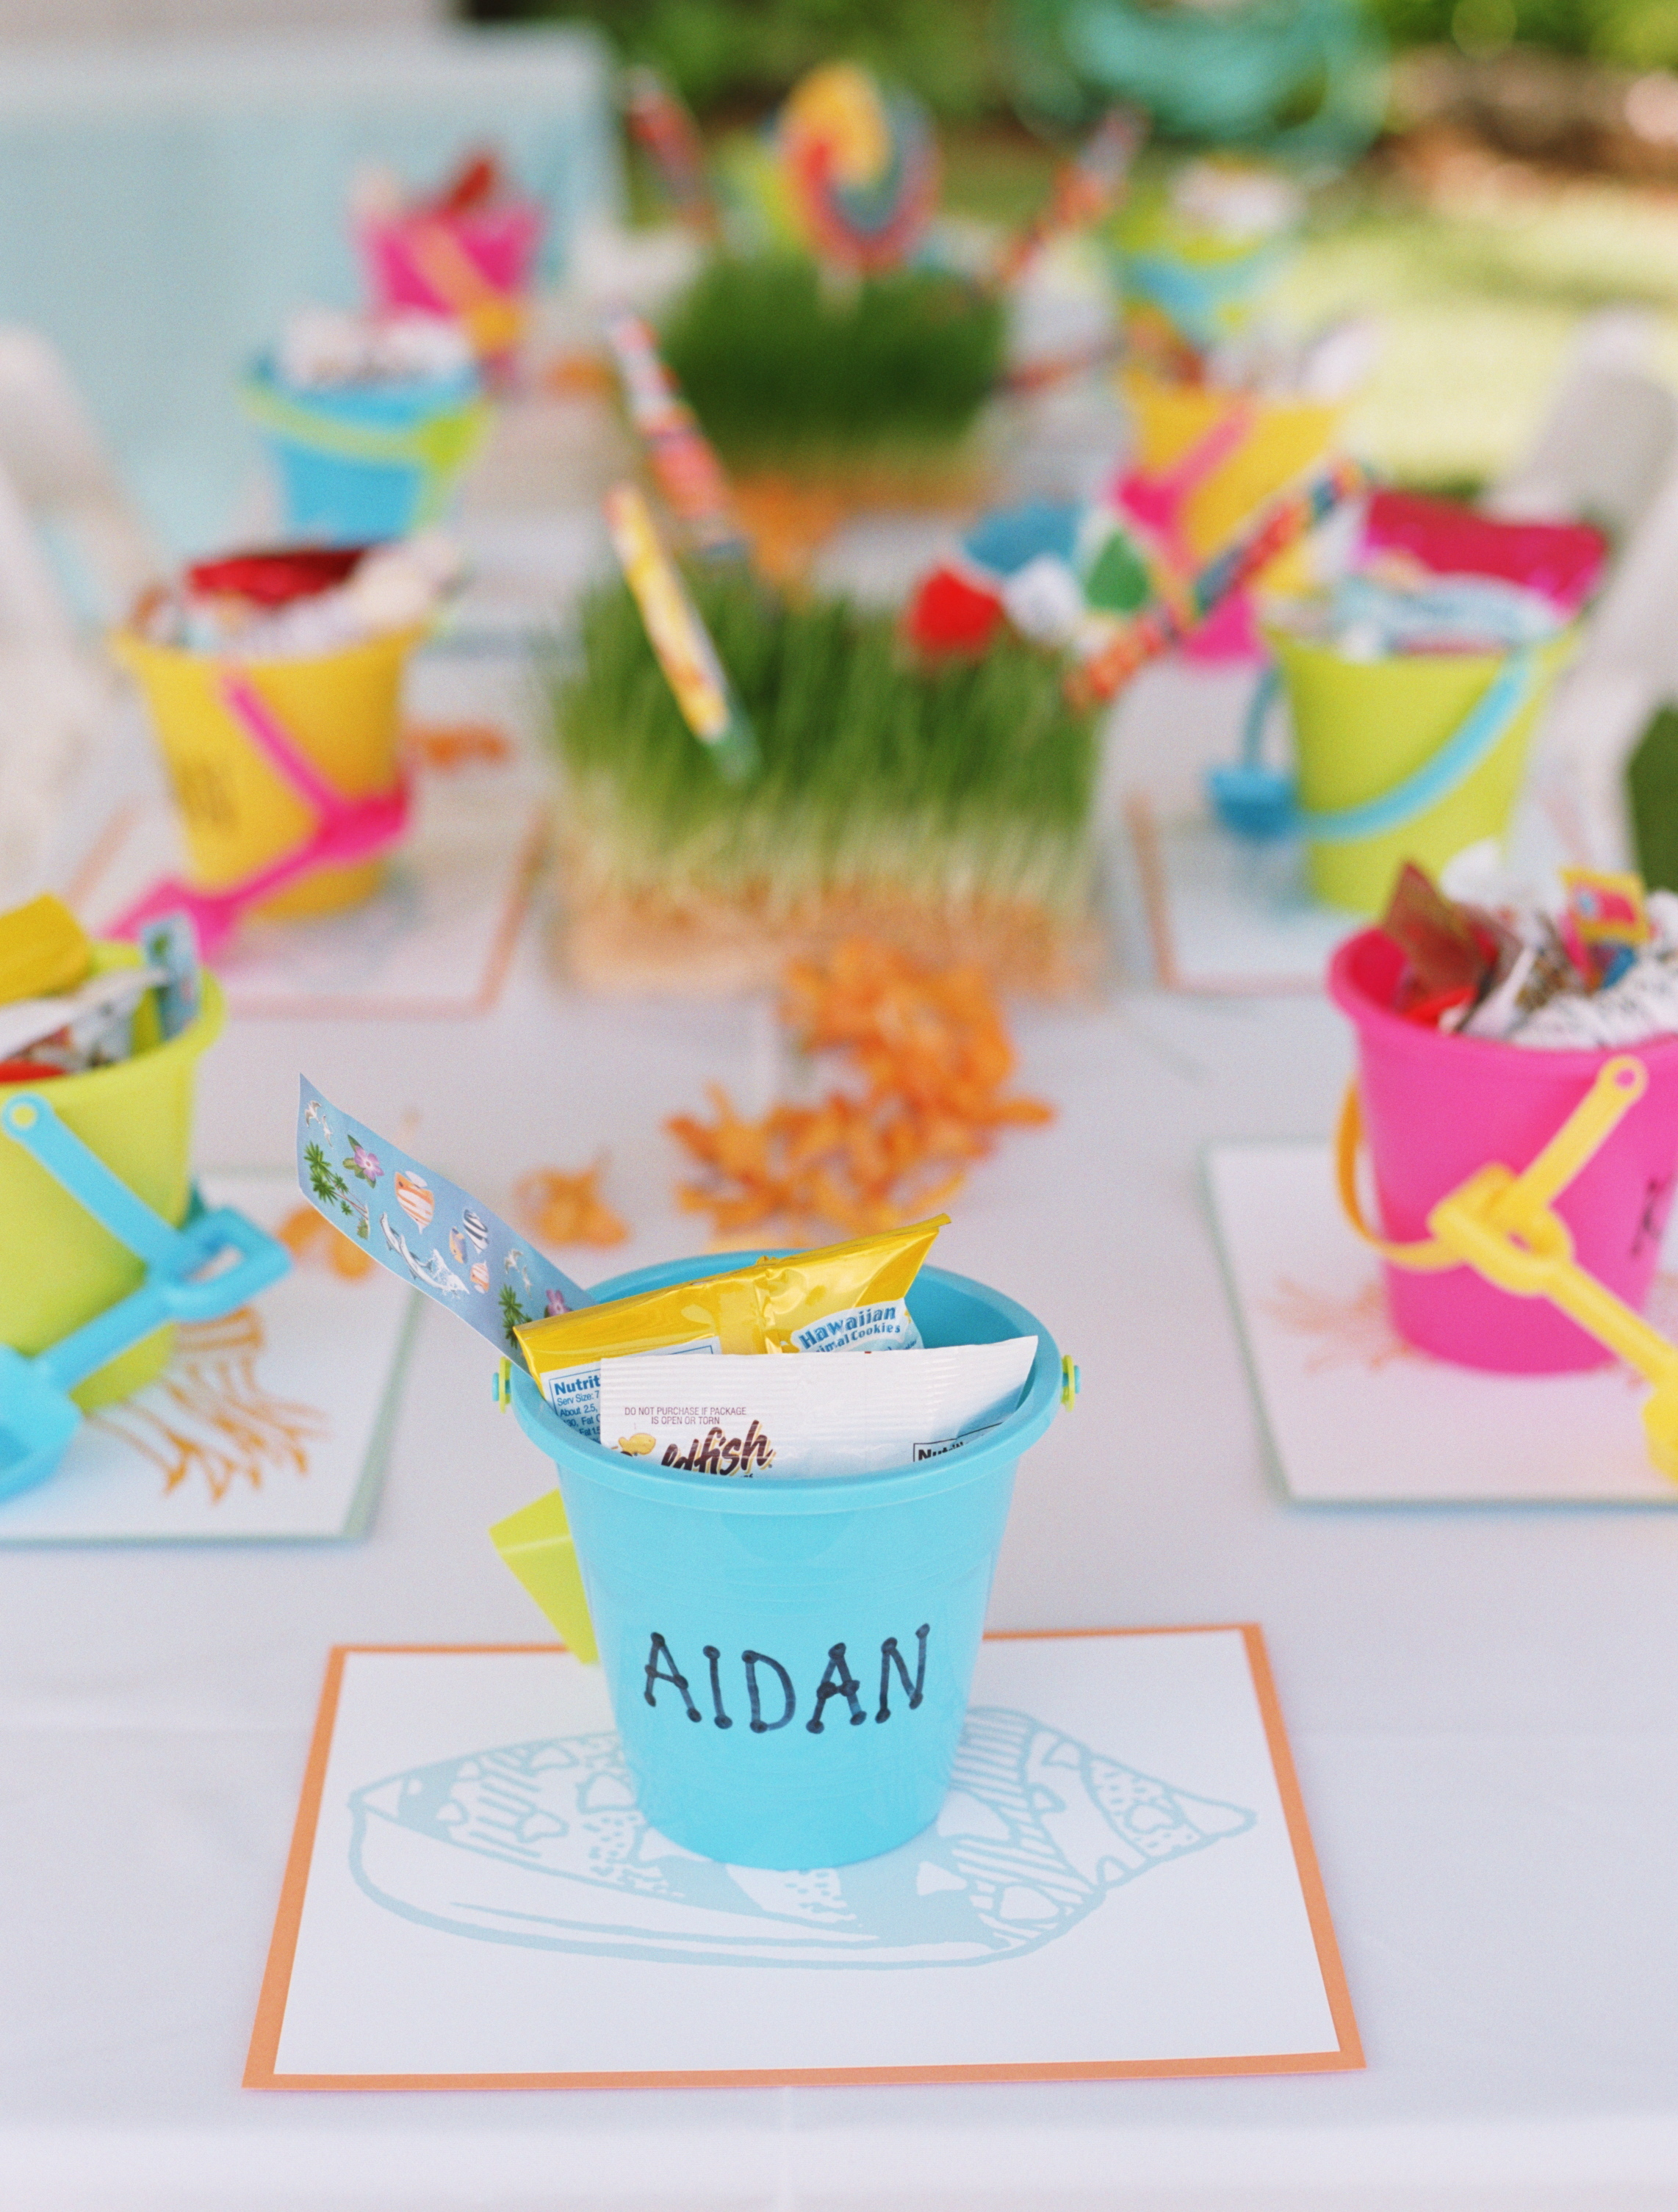 Reception, Flowers & Decor, Decor, Favors & Gifts, Destinations, orange, blue, Favors, Destination Weddings, Hawaii, Beach, Beach Wedding Flowers & Decor, Wedding, Colorful, Destination wedding, Hawaiian wedding, Kuaui